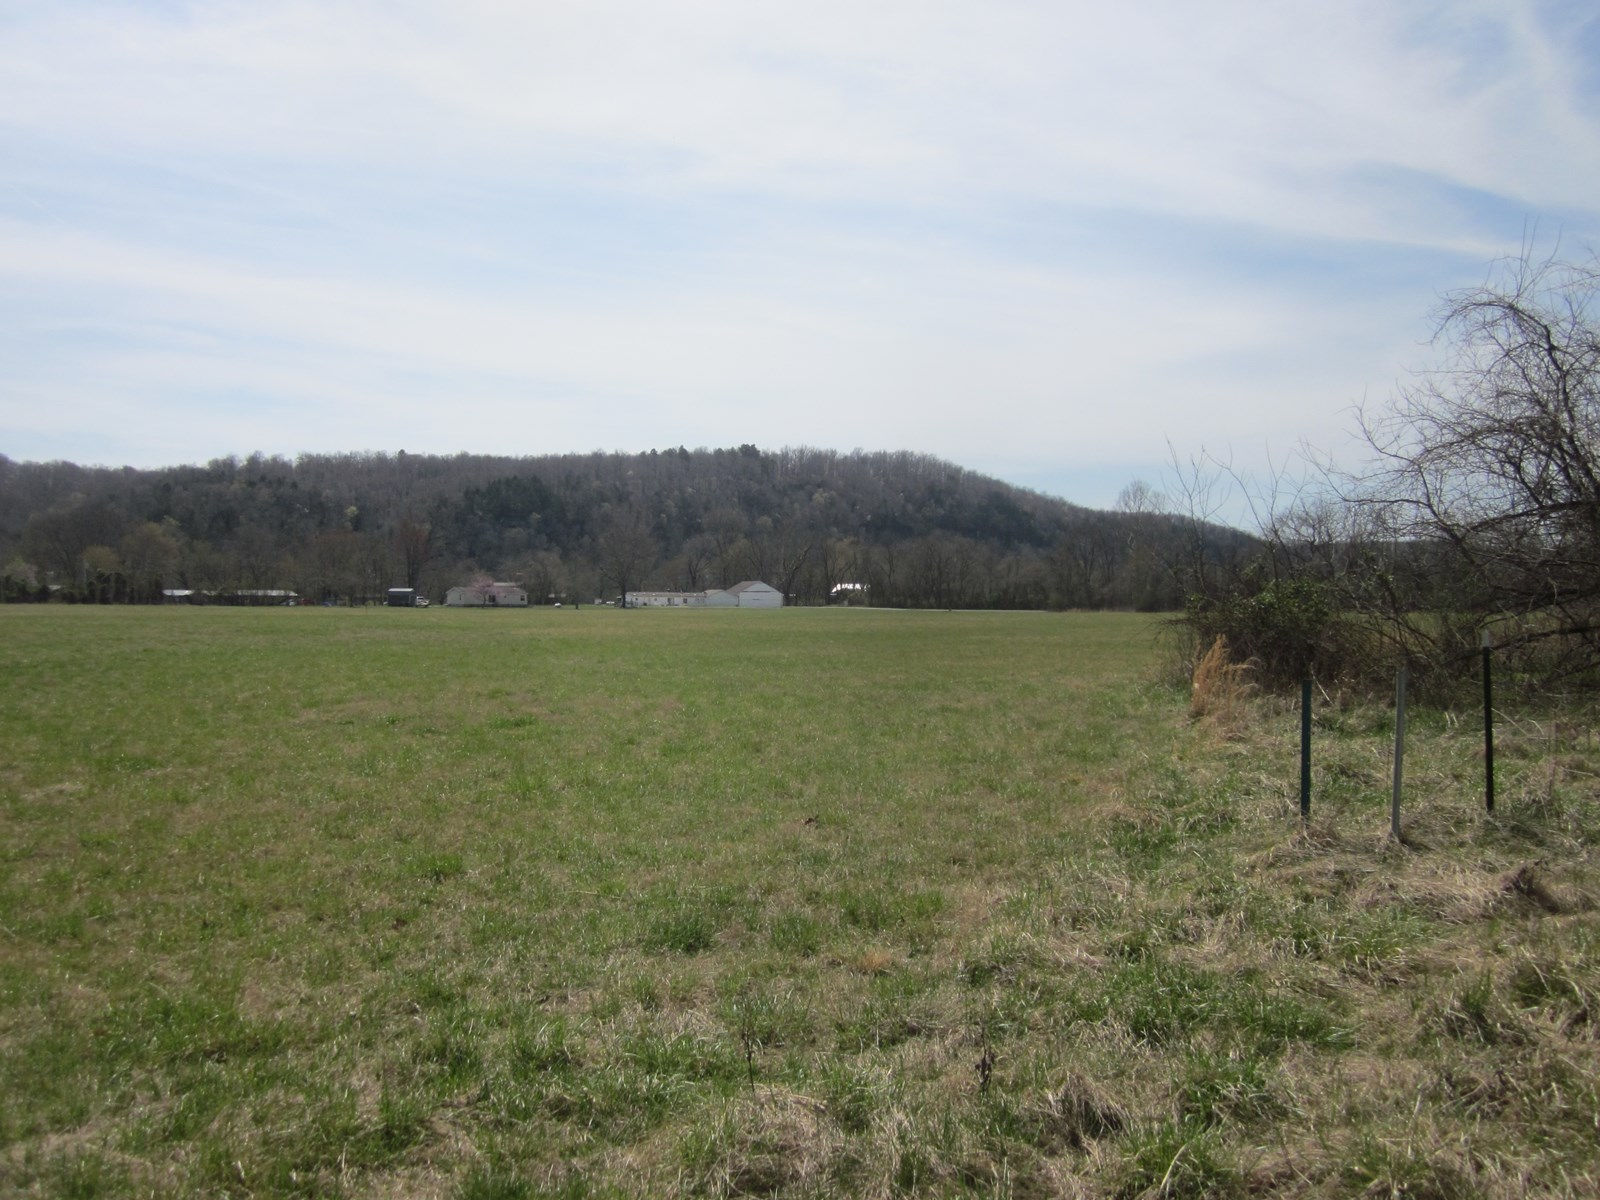 LAND FOR SALE AT THE VALLEY FLY IN, COTTER, AR